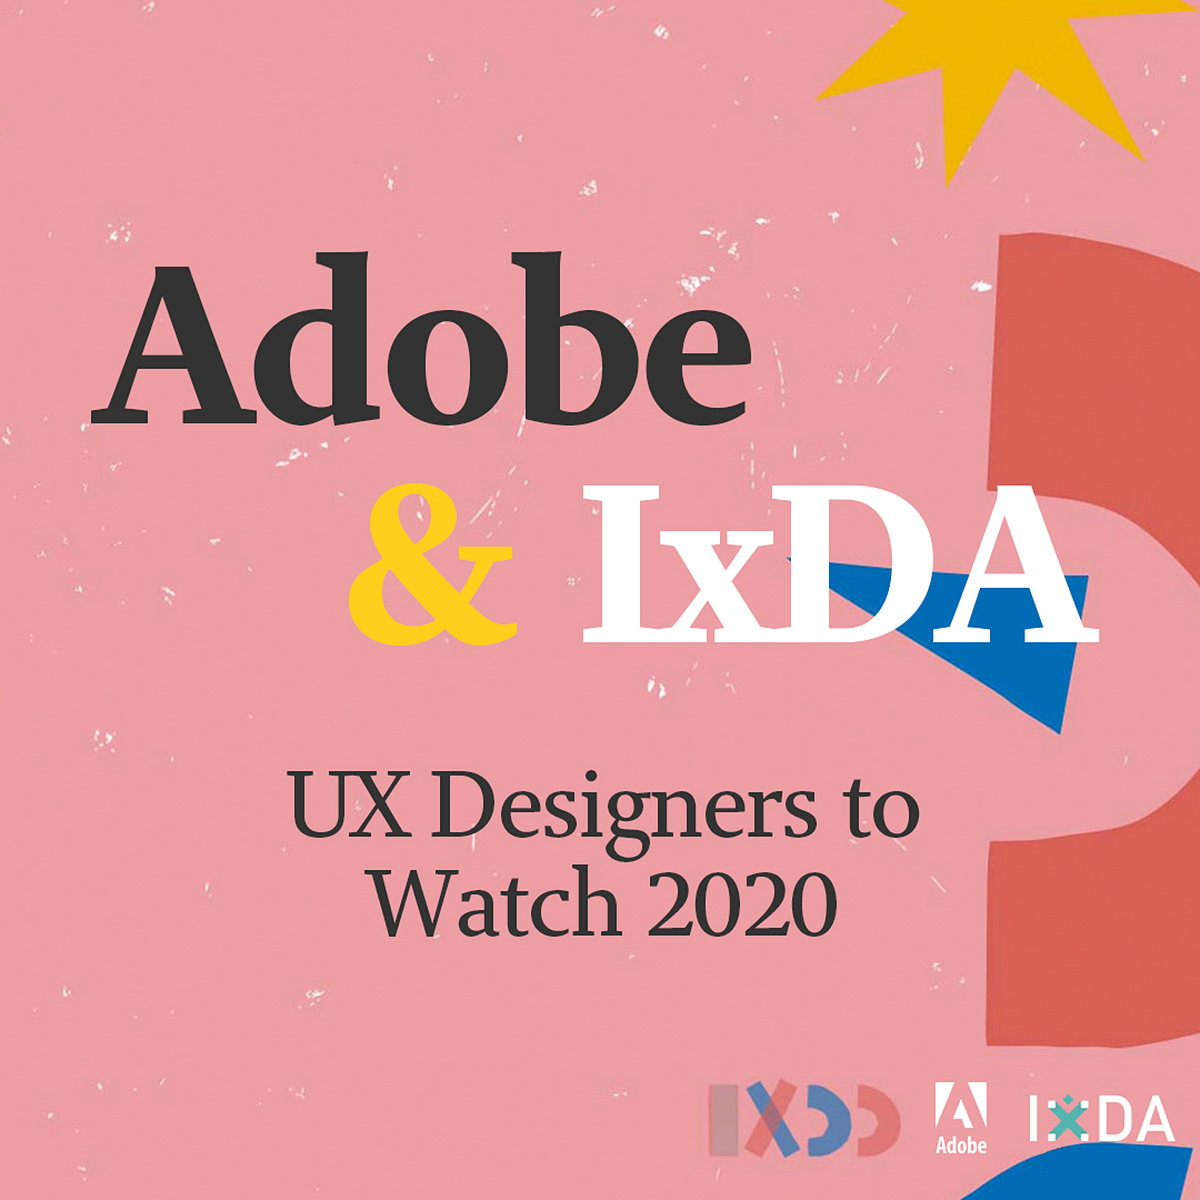 Adobe Announces UX Designers to Watch List 2020